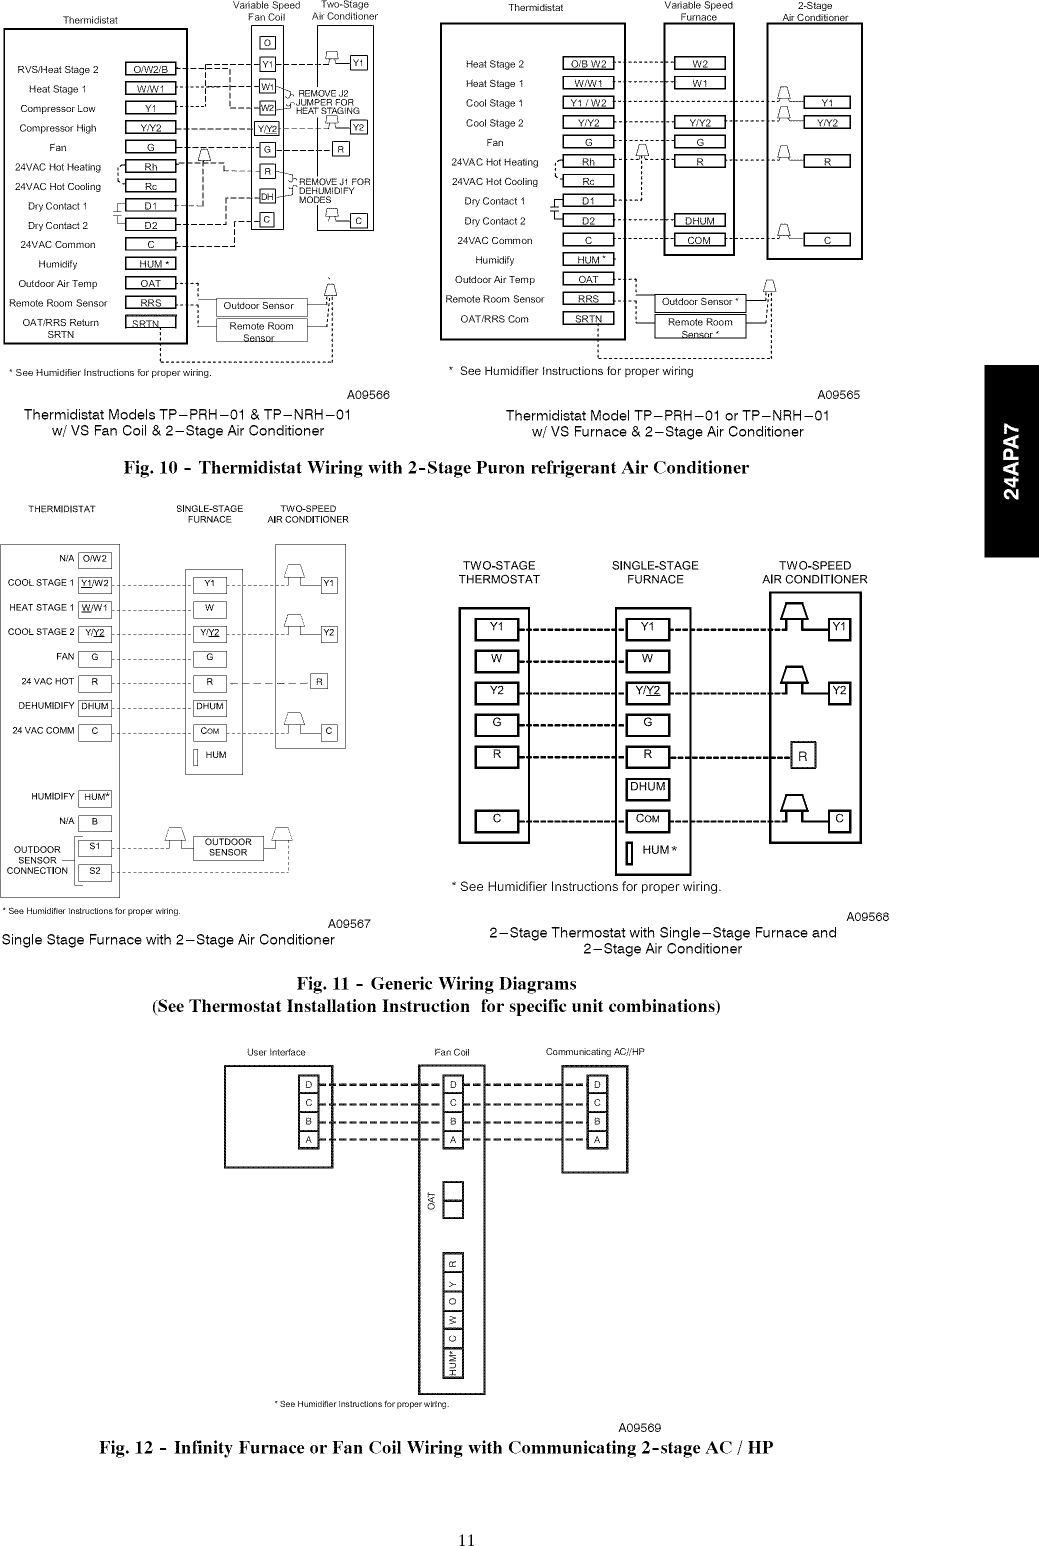 Carrier Thermidistat Wiring Diagram Explained Diagrams Tstatccprh01 B Air Conditioner Heat Pumpoutside Unit Manual L0912141 Pit Bike